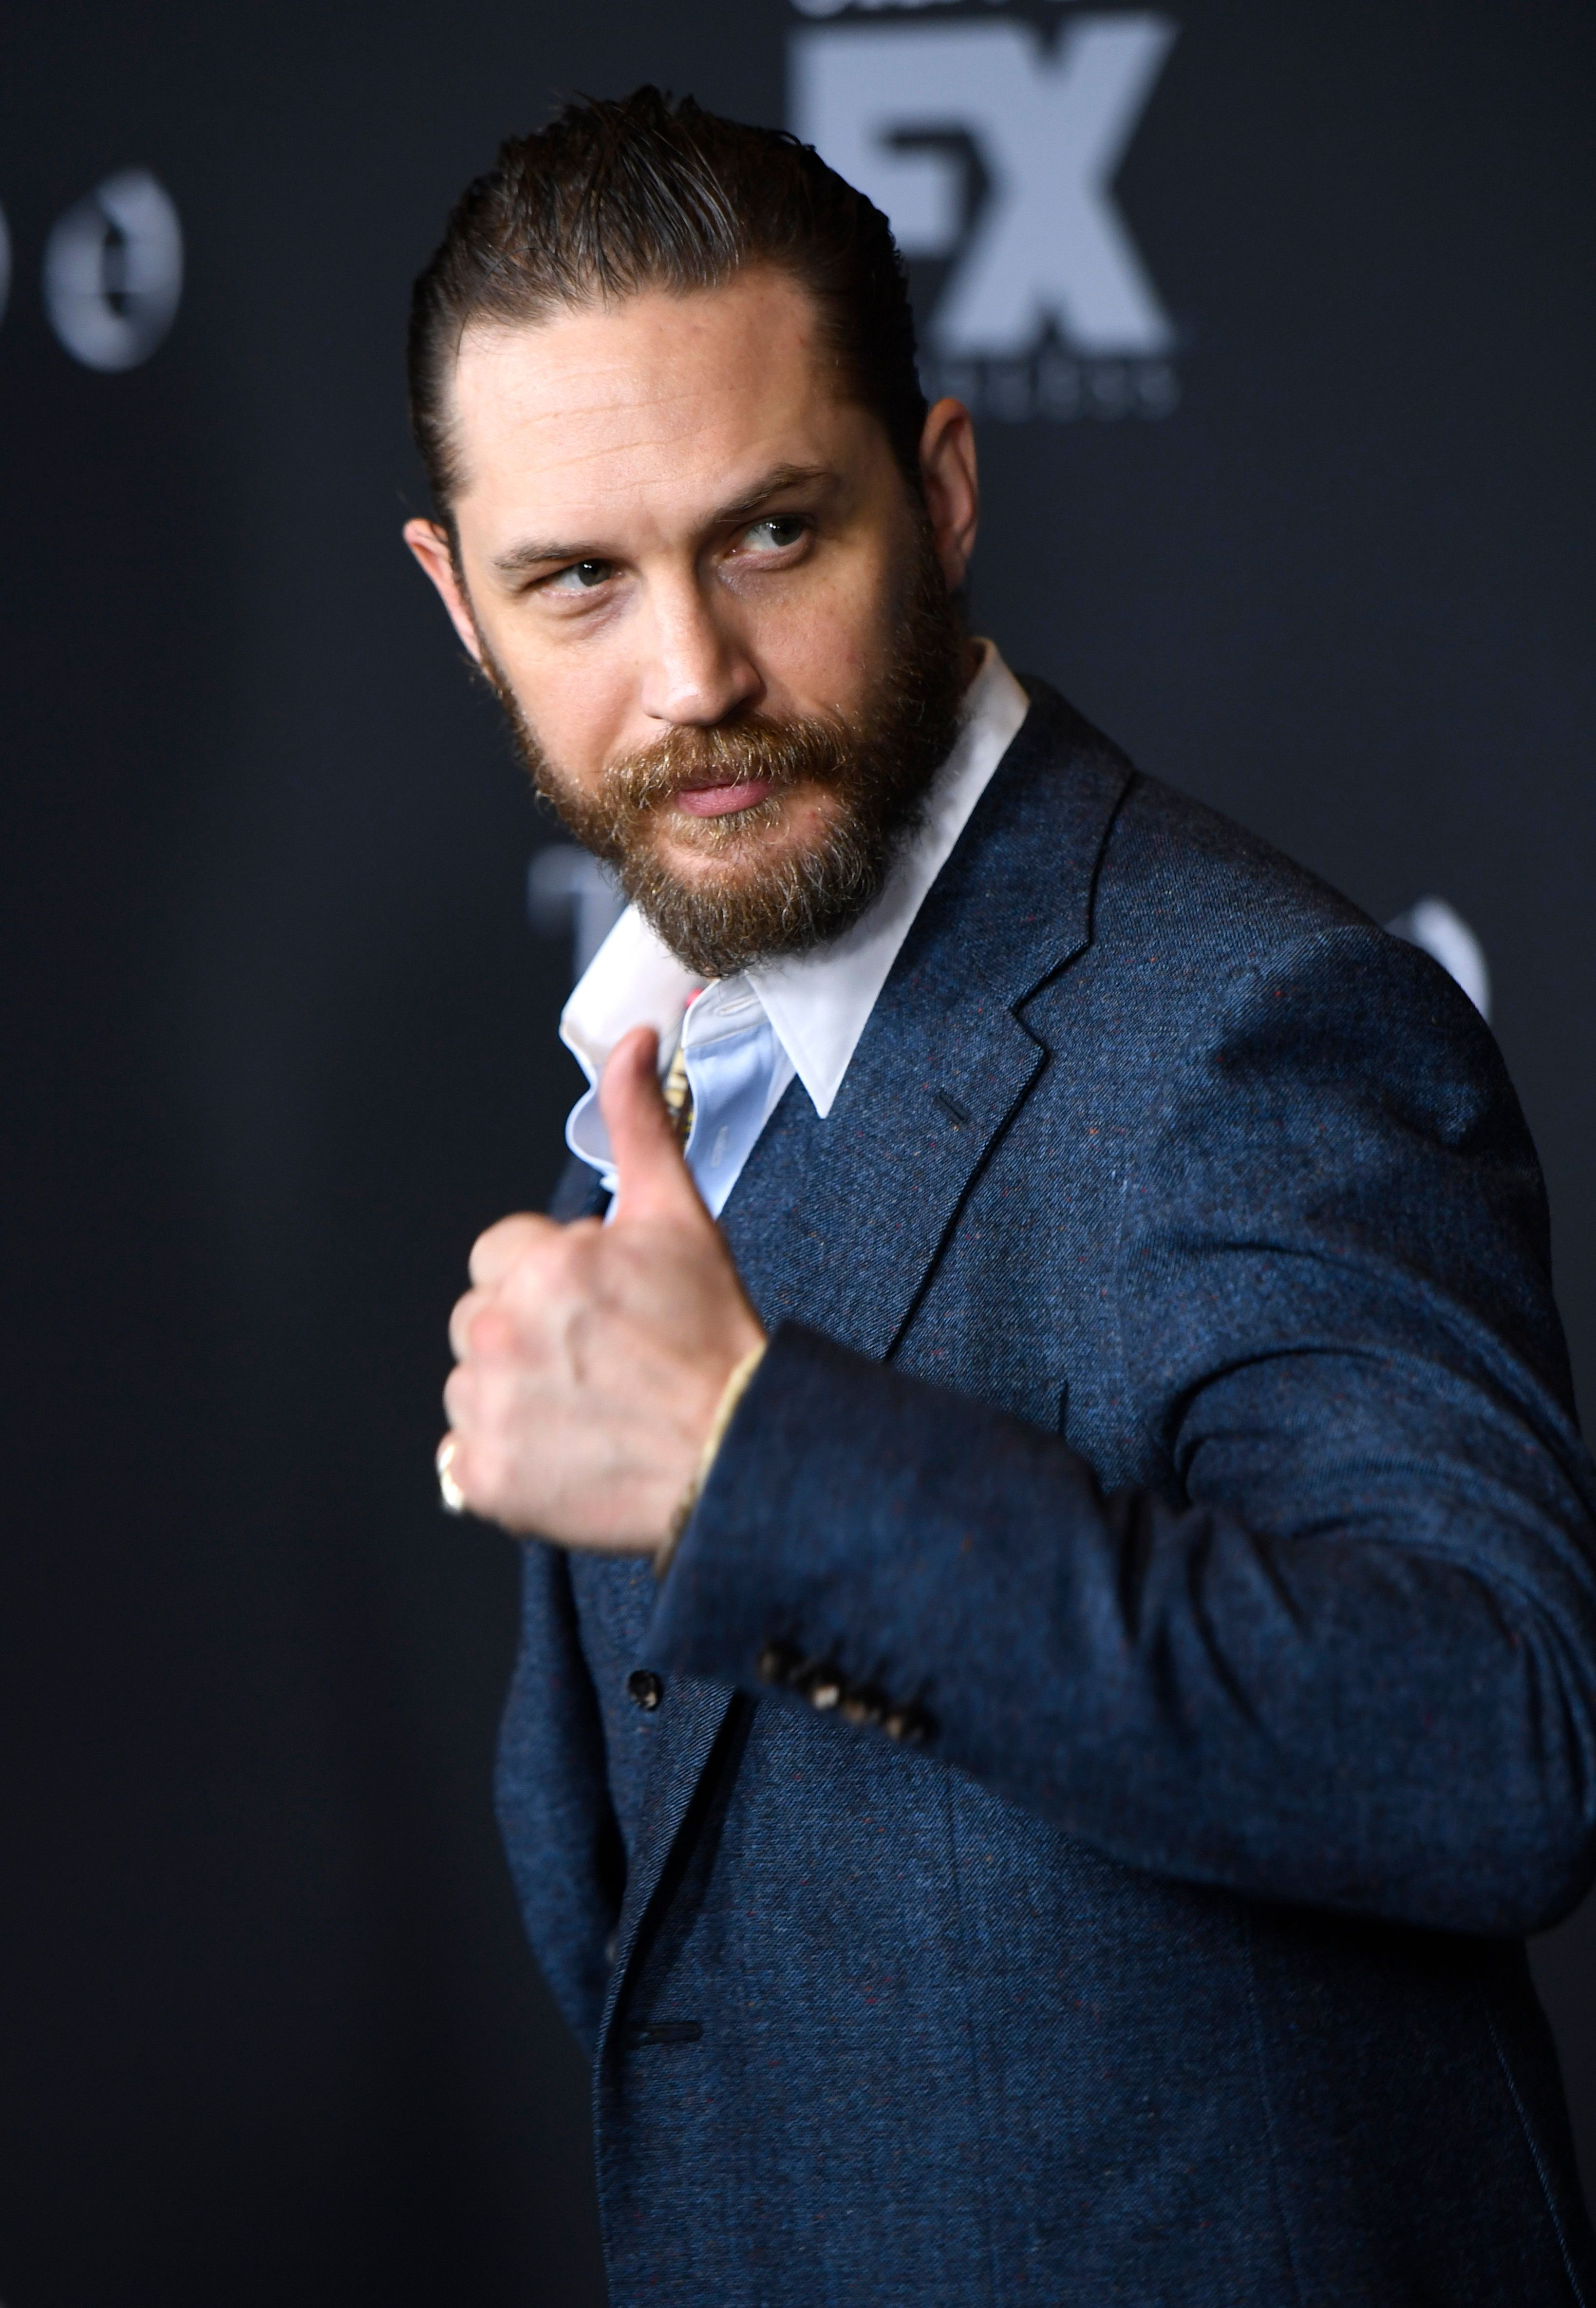 LOS ANGELES, CA - JANUARY 09:  Actor Tom Hardy attends the premiere of FX's 'Taboo' at DGA Theater on January 9, 2017 in Los Angeles, California.  (Photo by Matt Winkelmeyer/Getty Images)